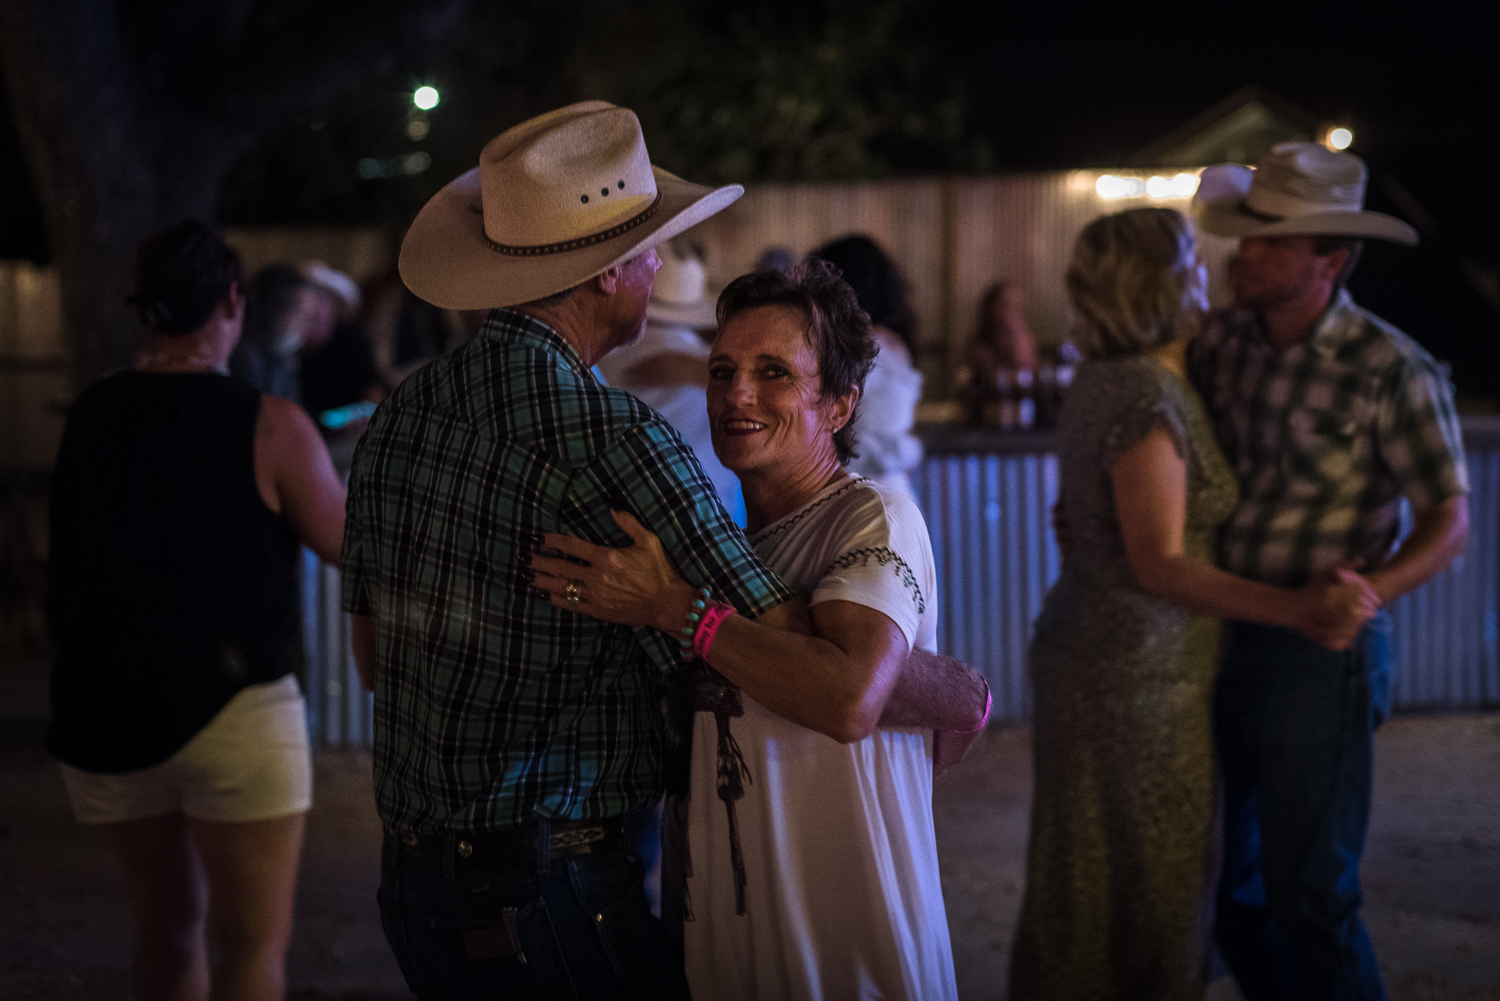 © Ayash Basu. Some cowboys join the locals for the night's entertainment after a rodeo night. Saw dust covered dance floors with a live band playing country and rock-and-roll classics sets the mood for the night. Bandera 2017.